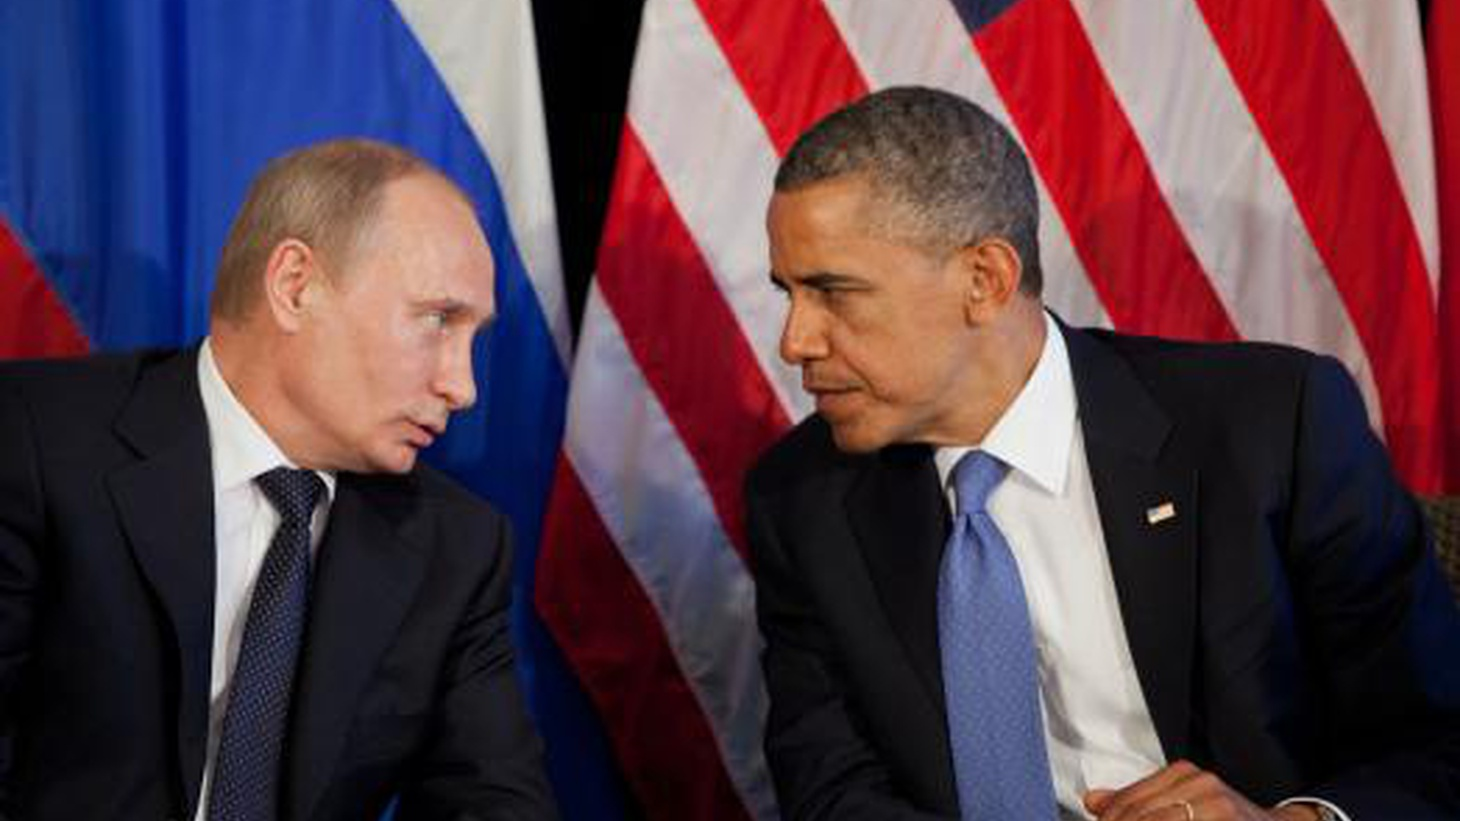 President Obama's in Russia for the G20 summit, where America's threat to attack Syria has taken center state. What separates the US and Russia over chemical weapons?